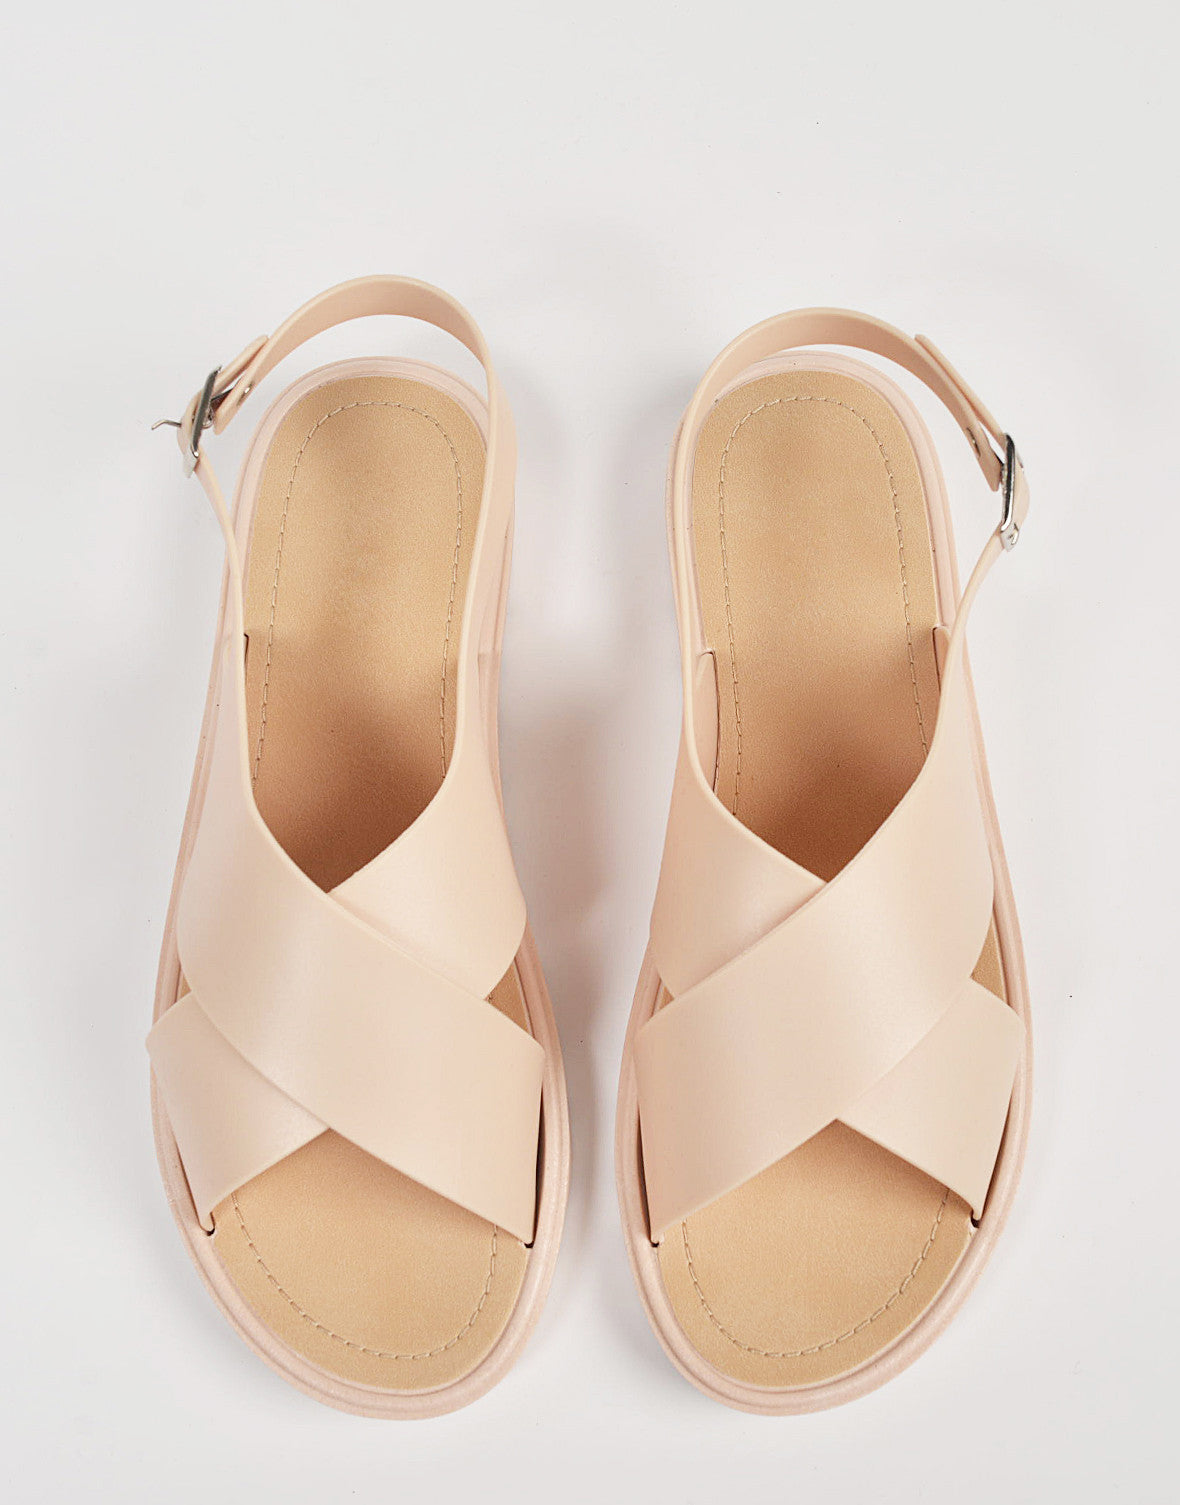 Top View of Crossed Jelly Slingback Sandals